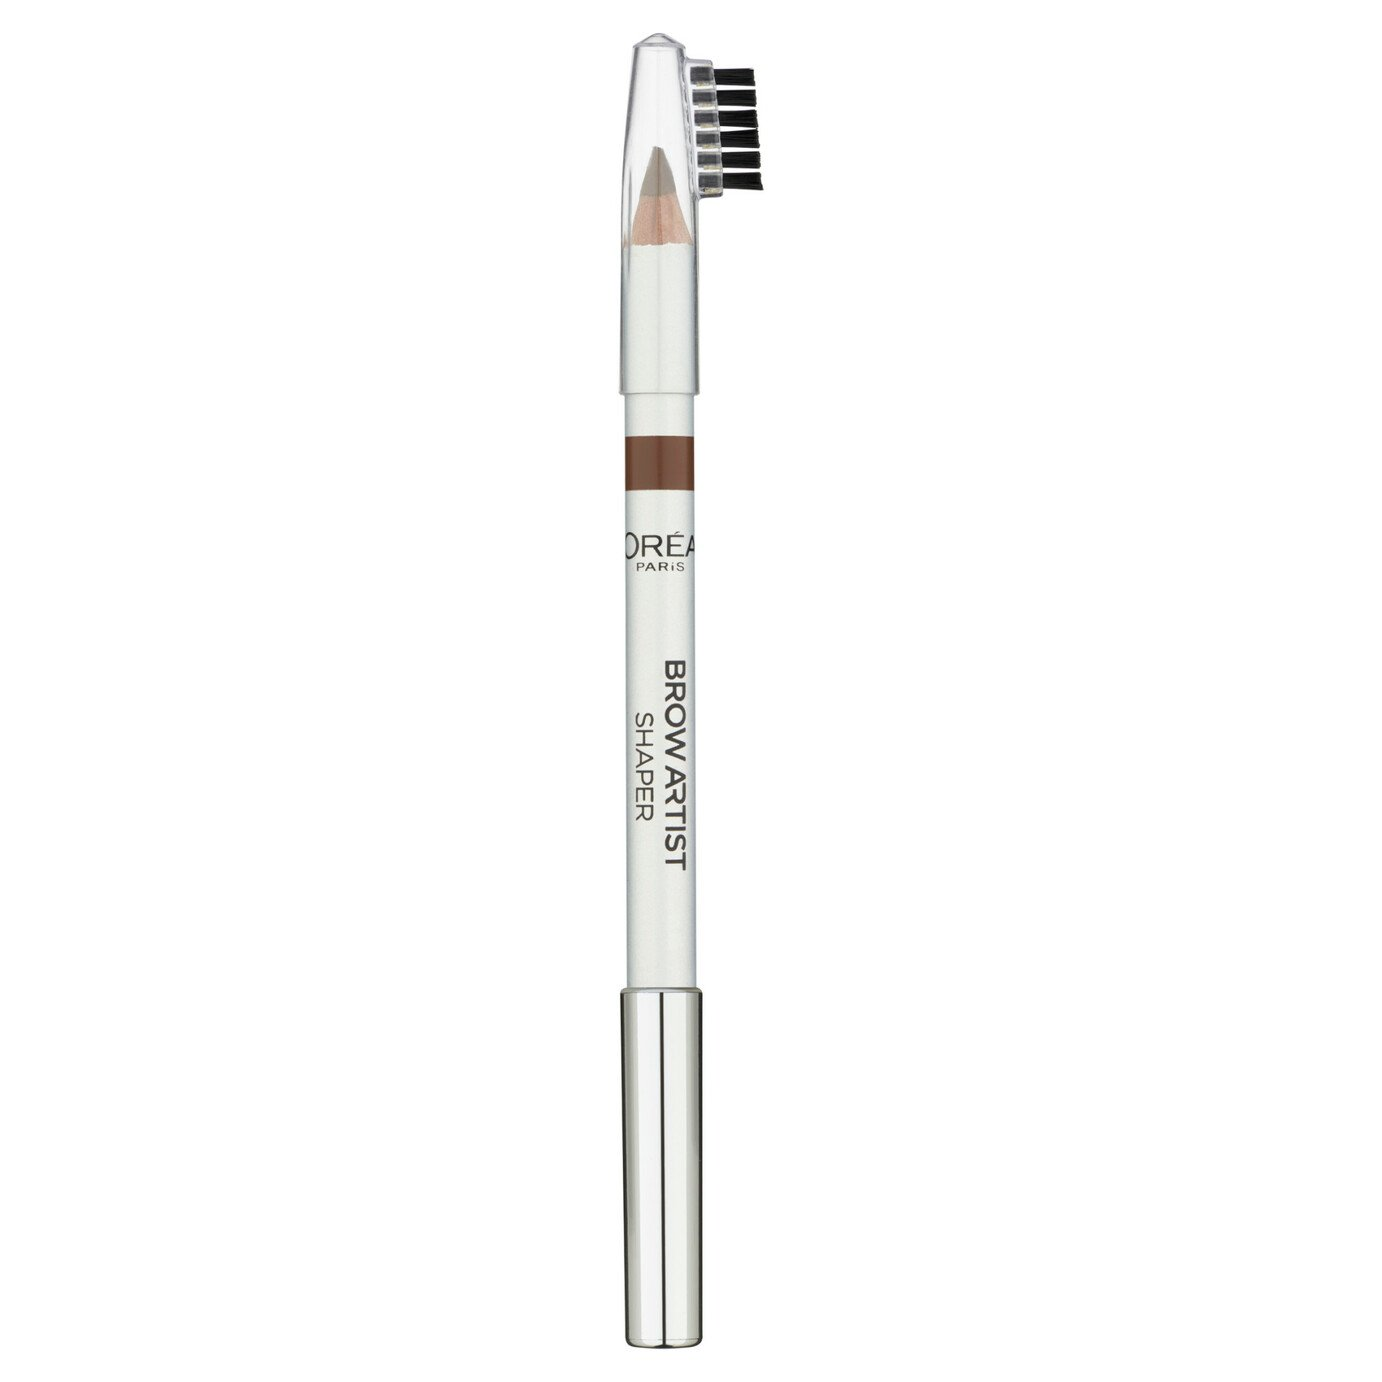 L'Oreal Brow Artist Eyebrow Pencil - 03 Brunette